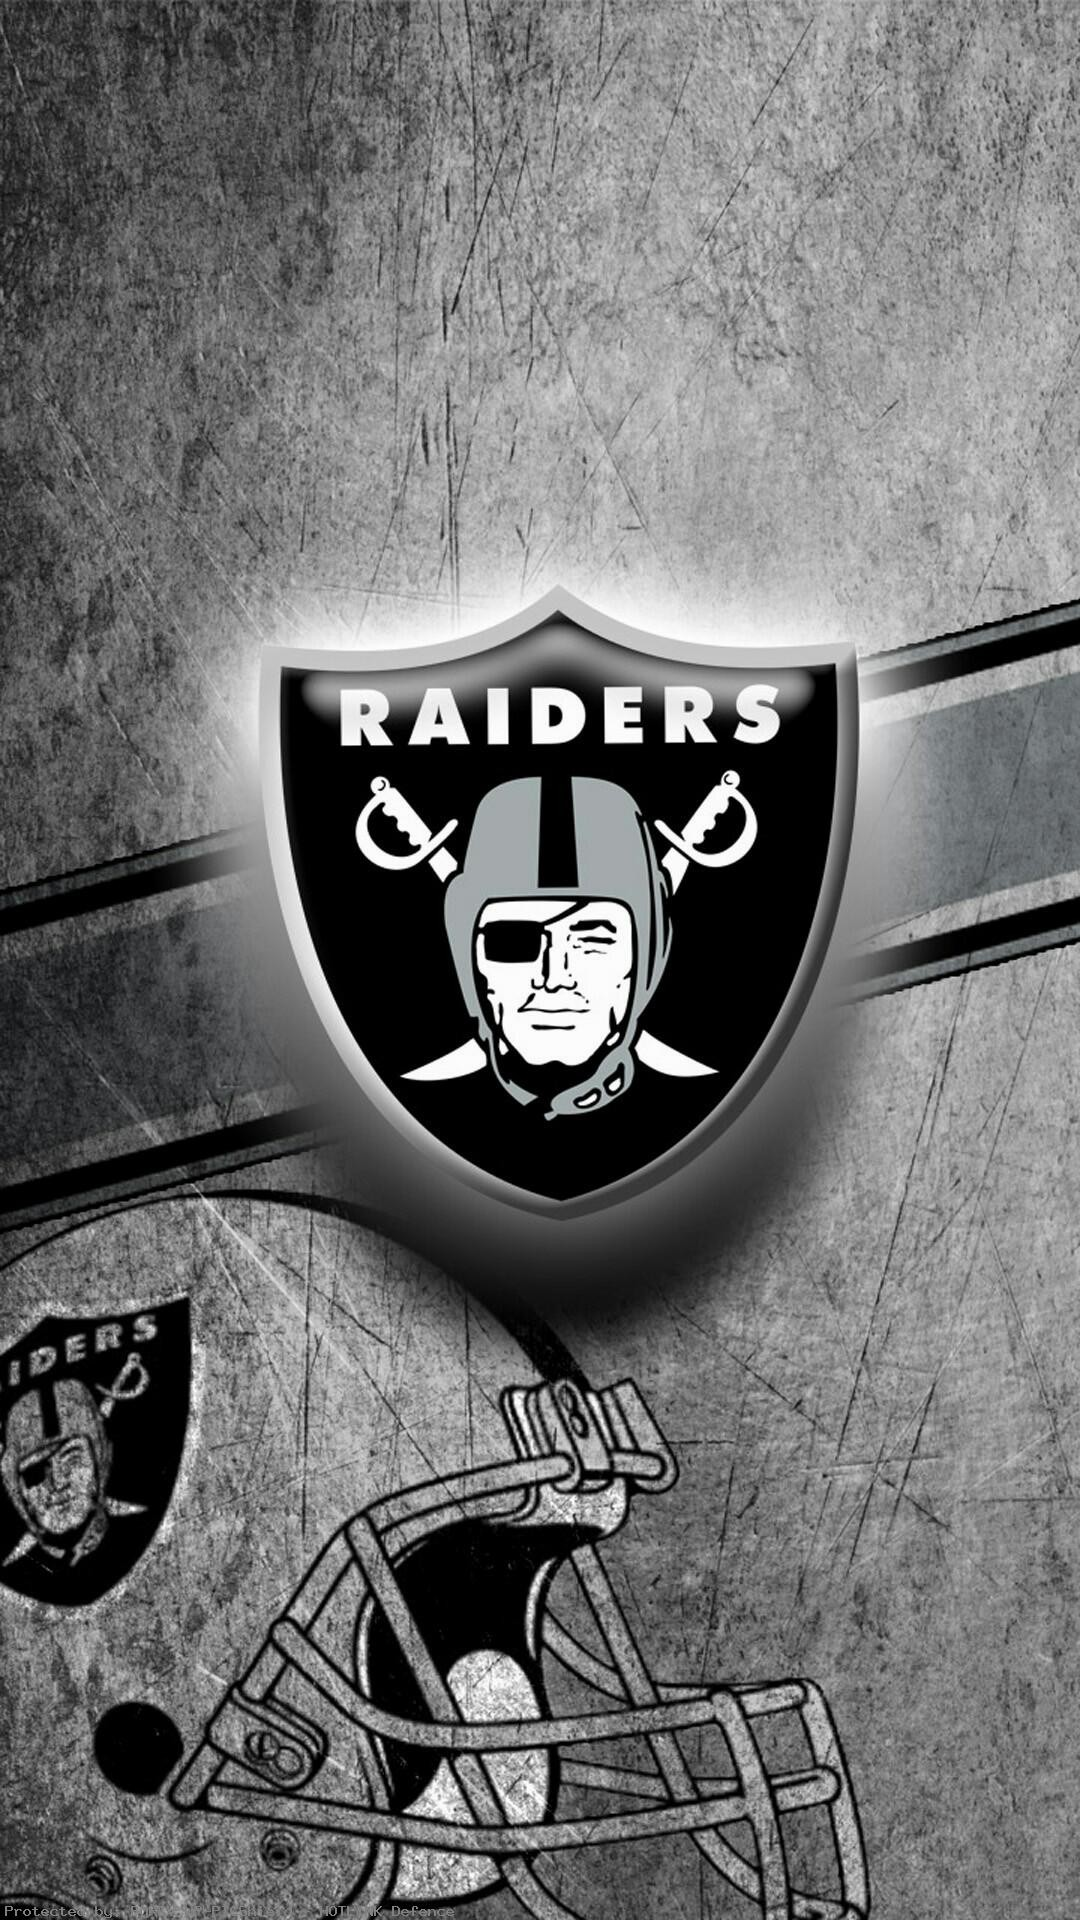 Download-free-raiders-for-your-mobile-phone-by-